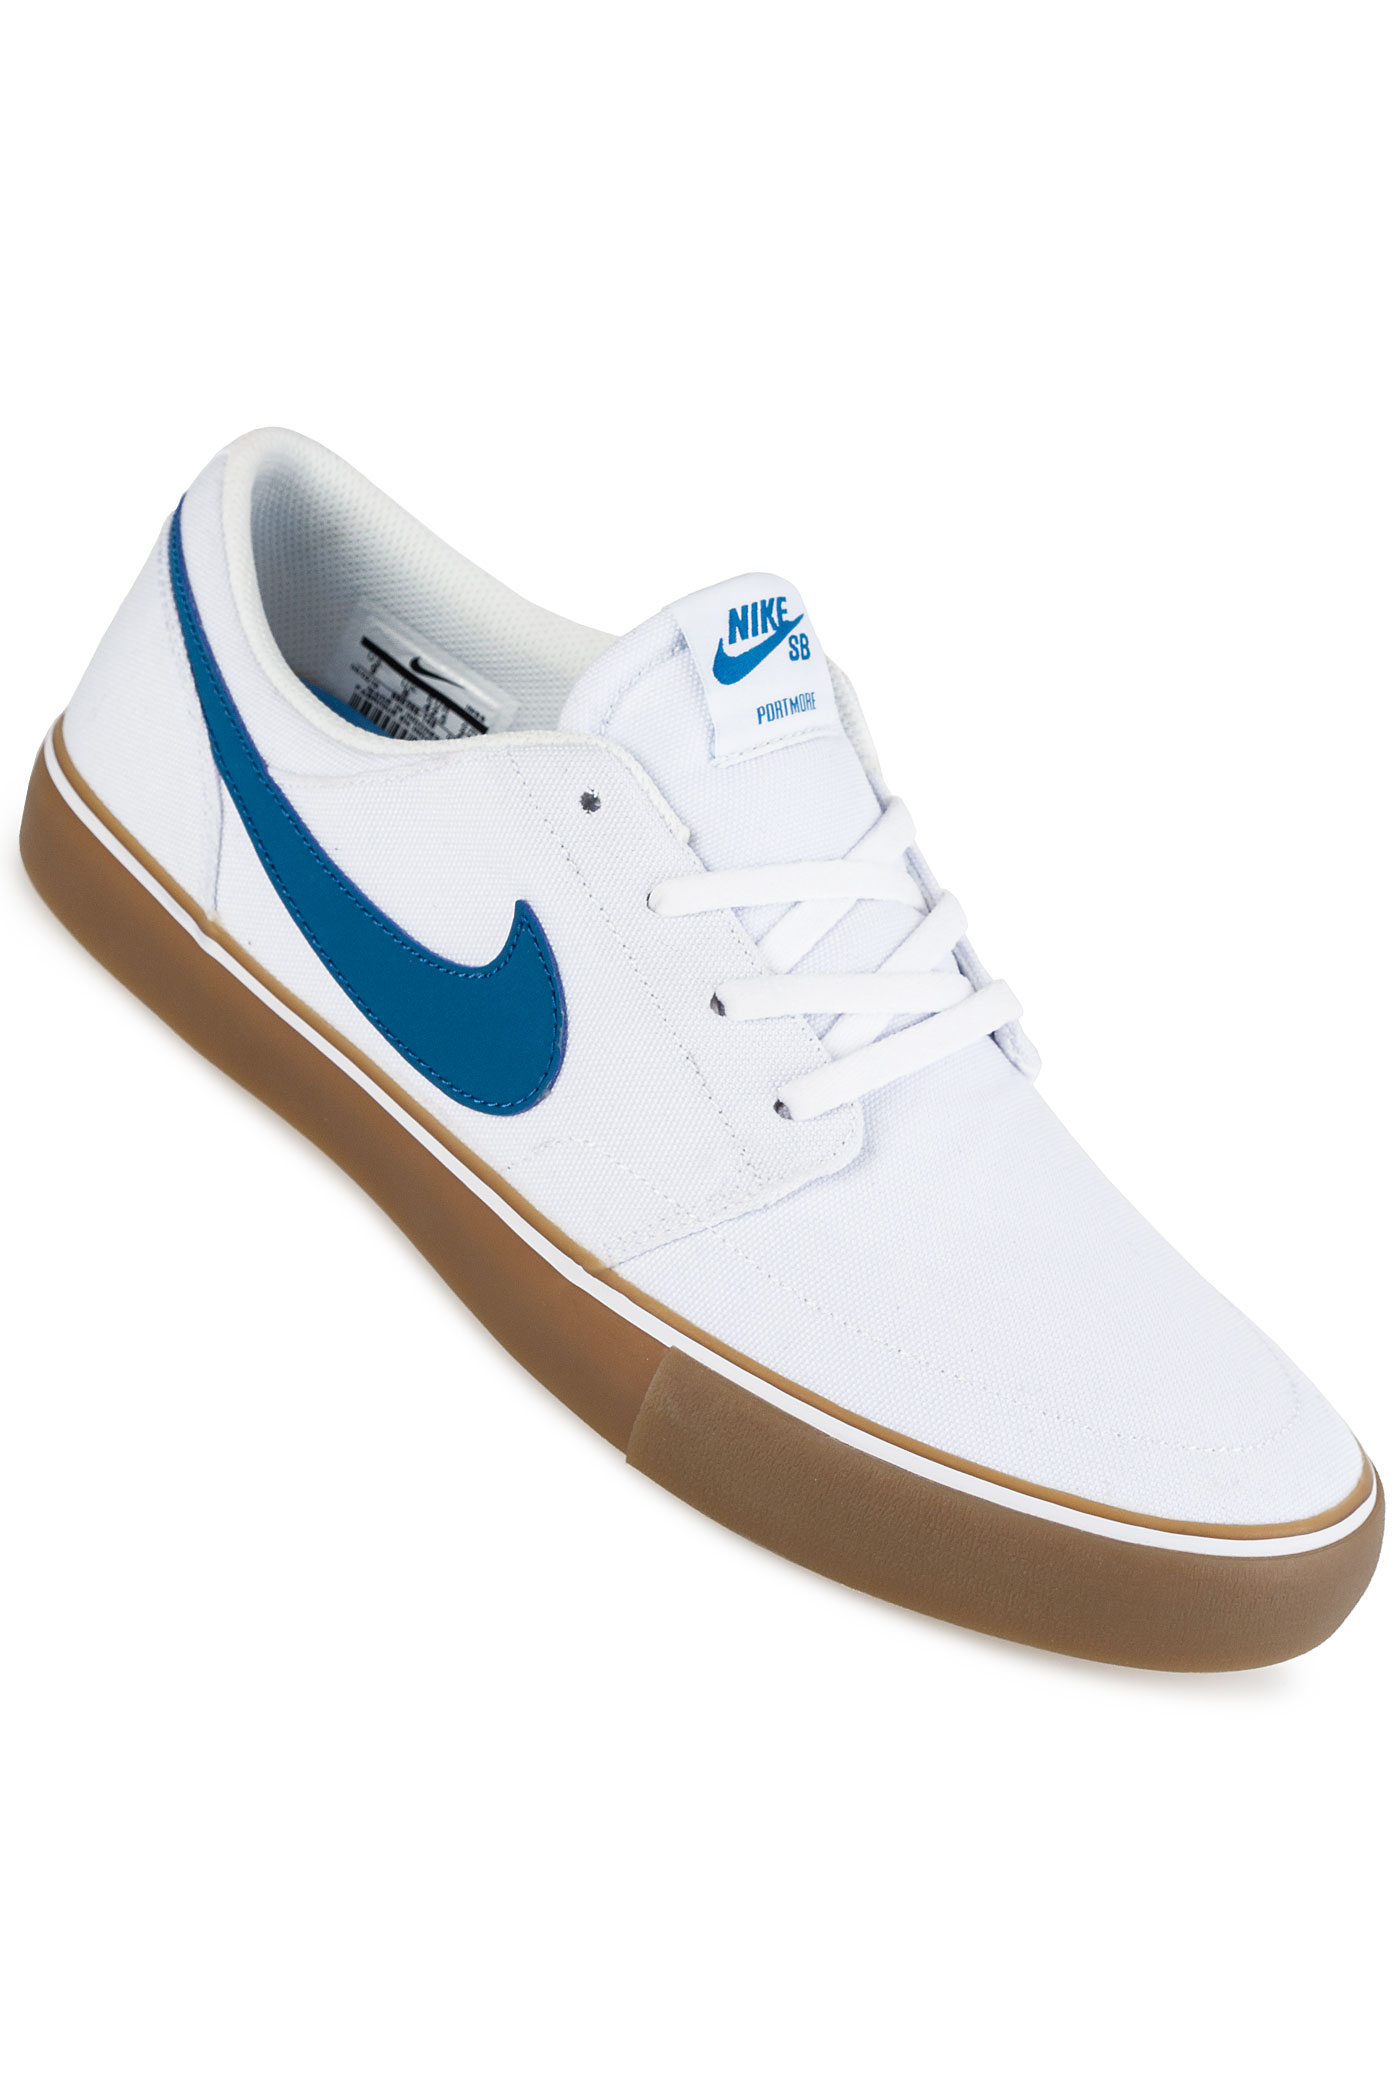 nike sb solarsoft portmore ii canvas shoes white industrial blue buy at skatedeluxe. Black Bedroom Furniture Sets. Home Design Ideas